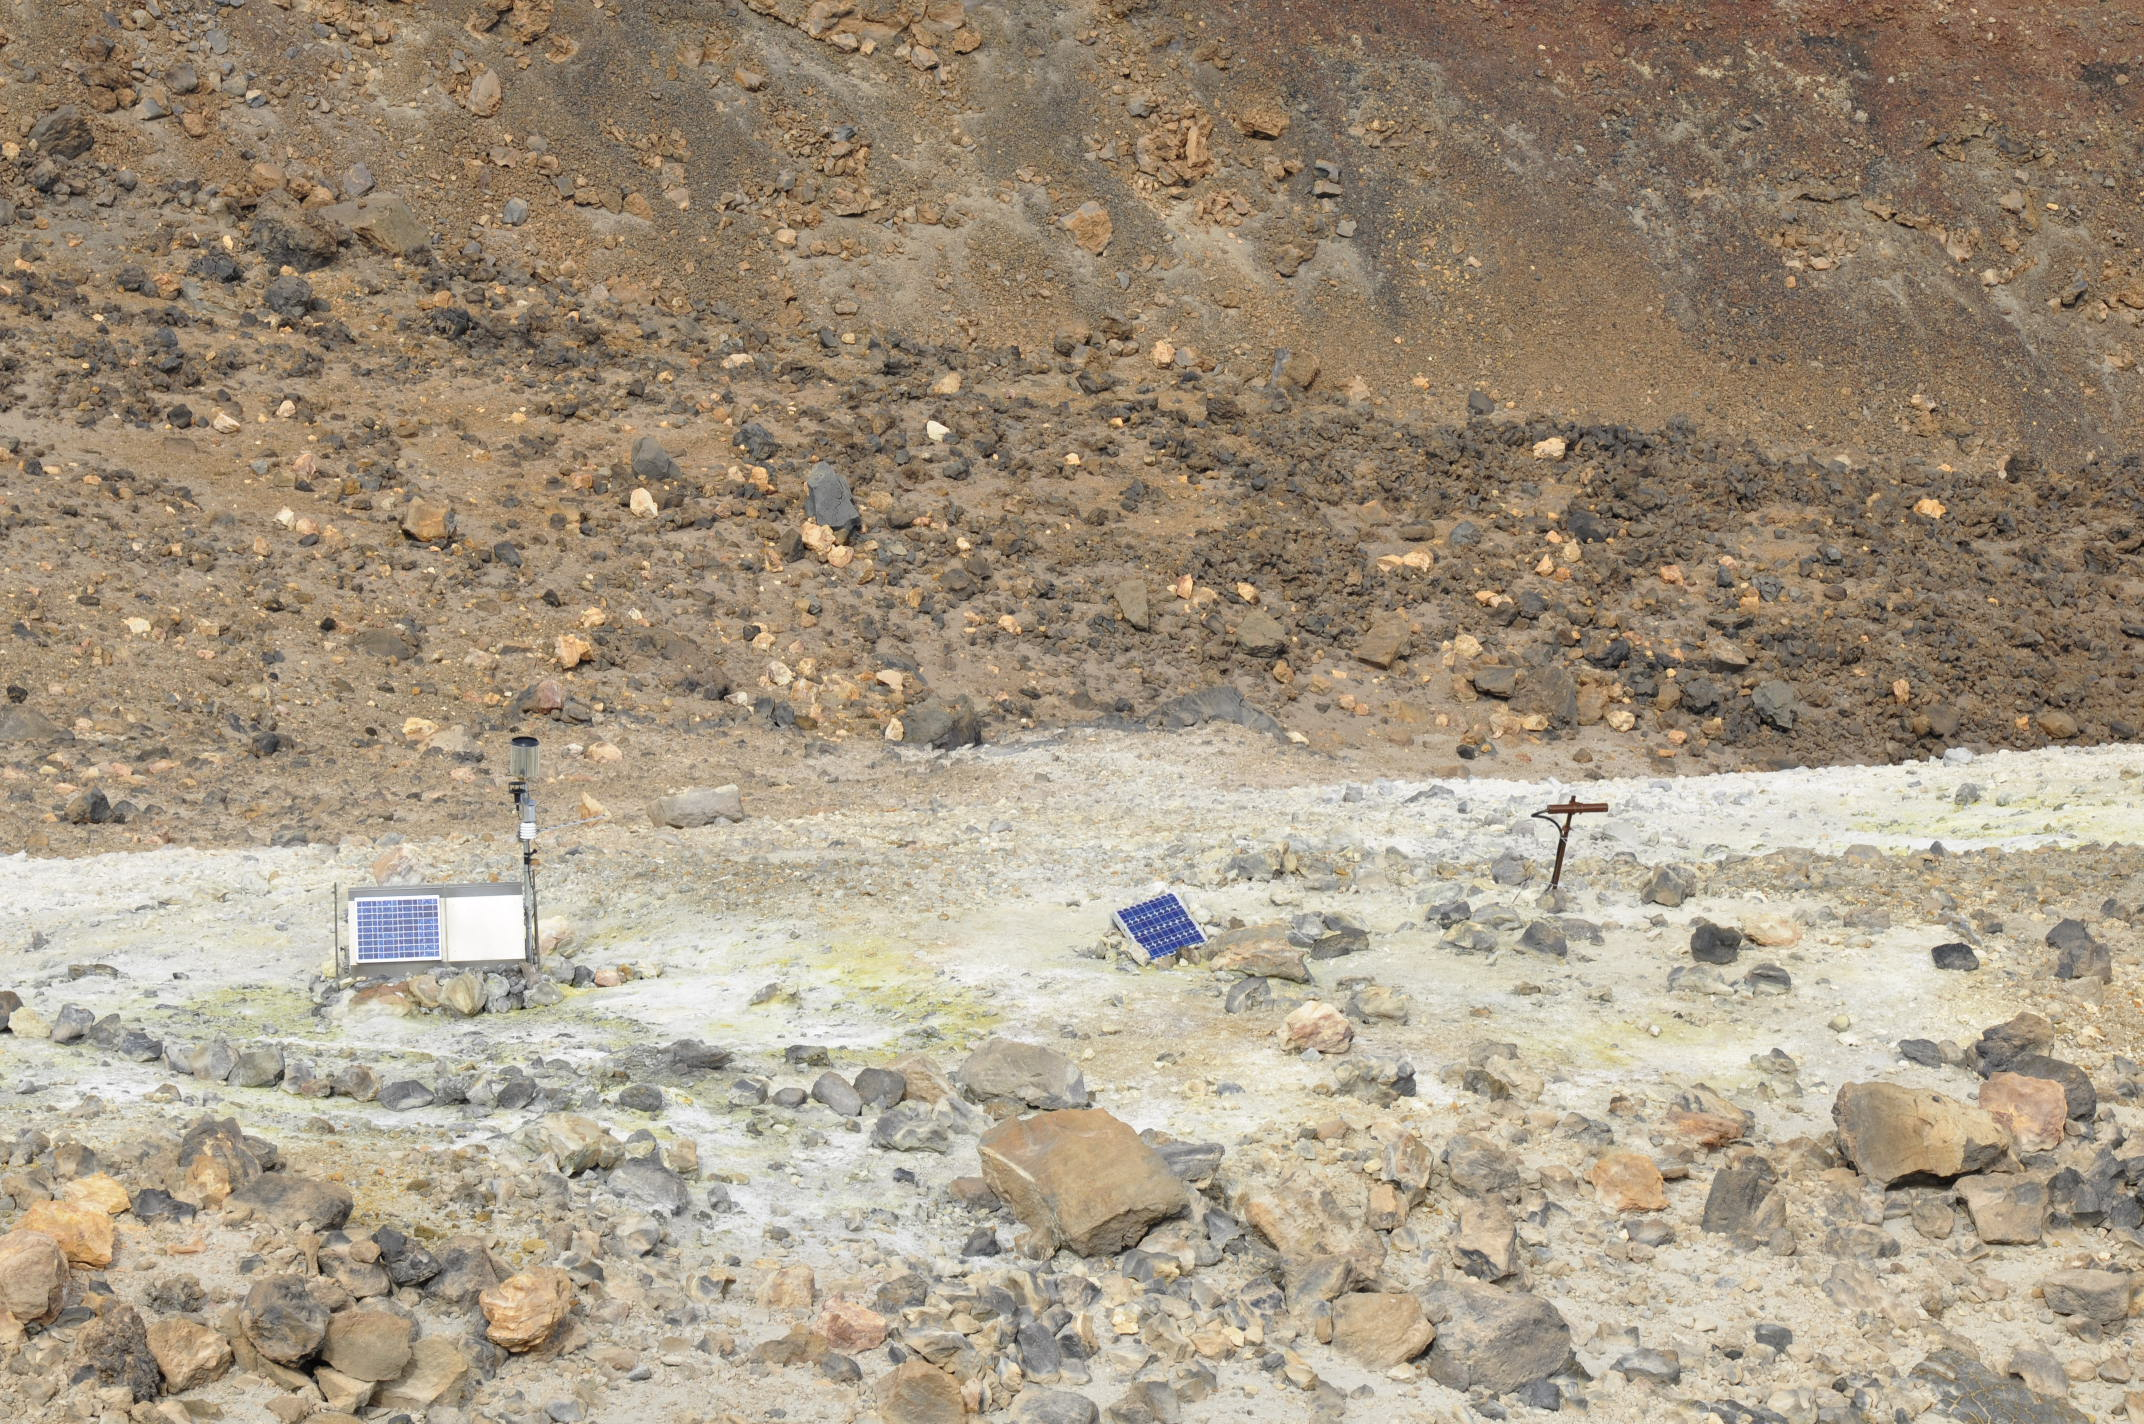 Fumaroles on Teide, with some instruments whose purpose I am not sure about. Note how the ground is yellow with sulphur.